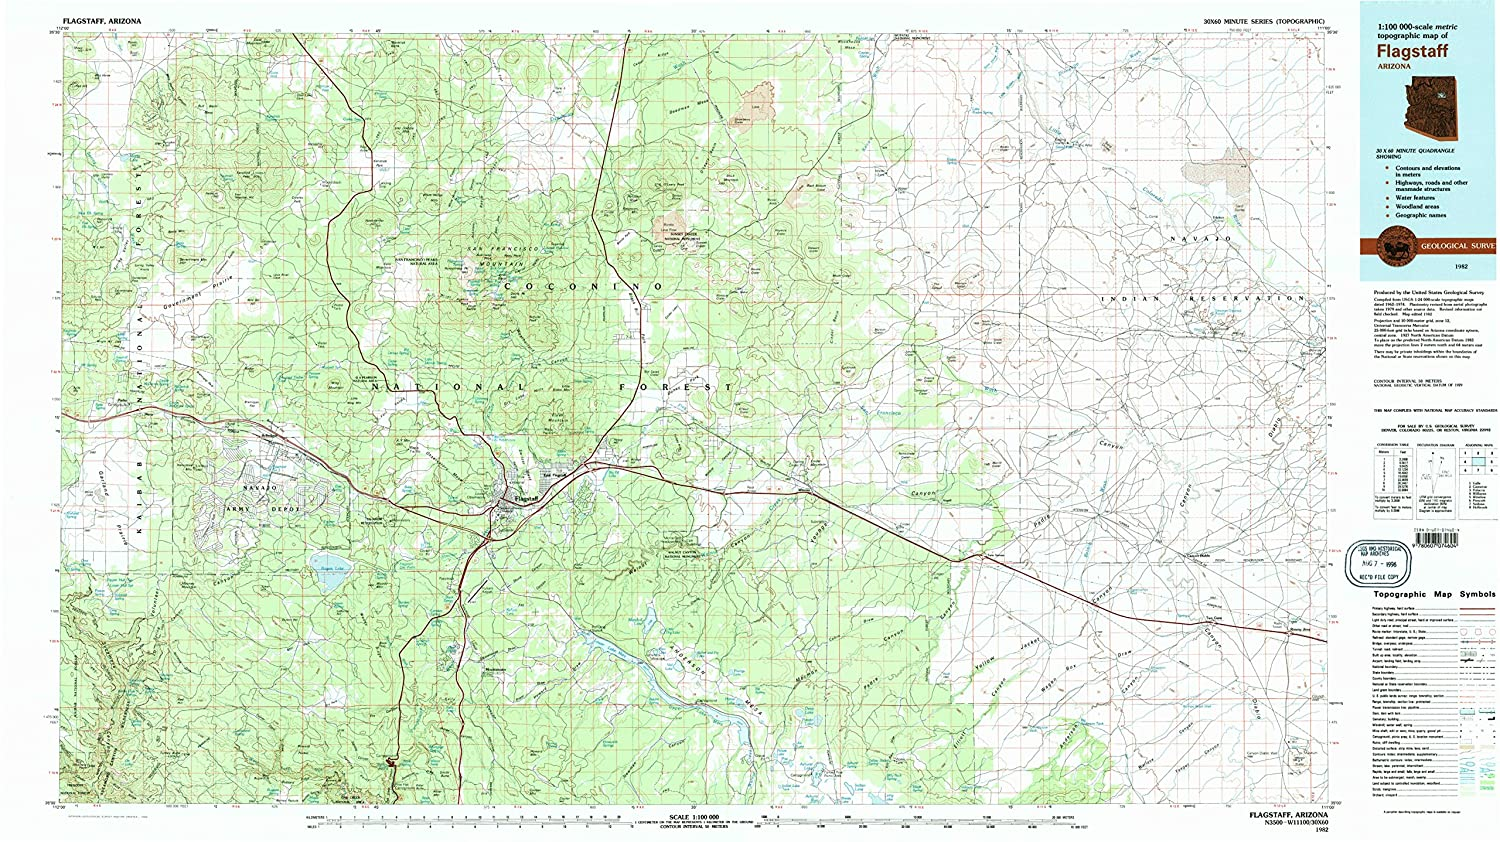 Map Of Flagstaff Arizona.Amazon Com Yellowmaps Flagstaff Az Topo Map 1 100000 Scale 30 X